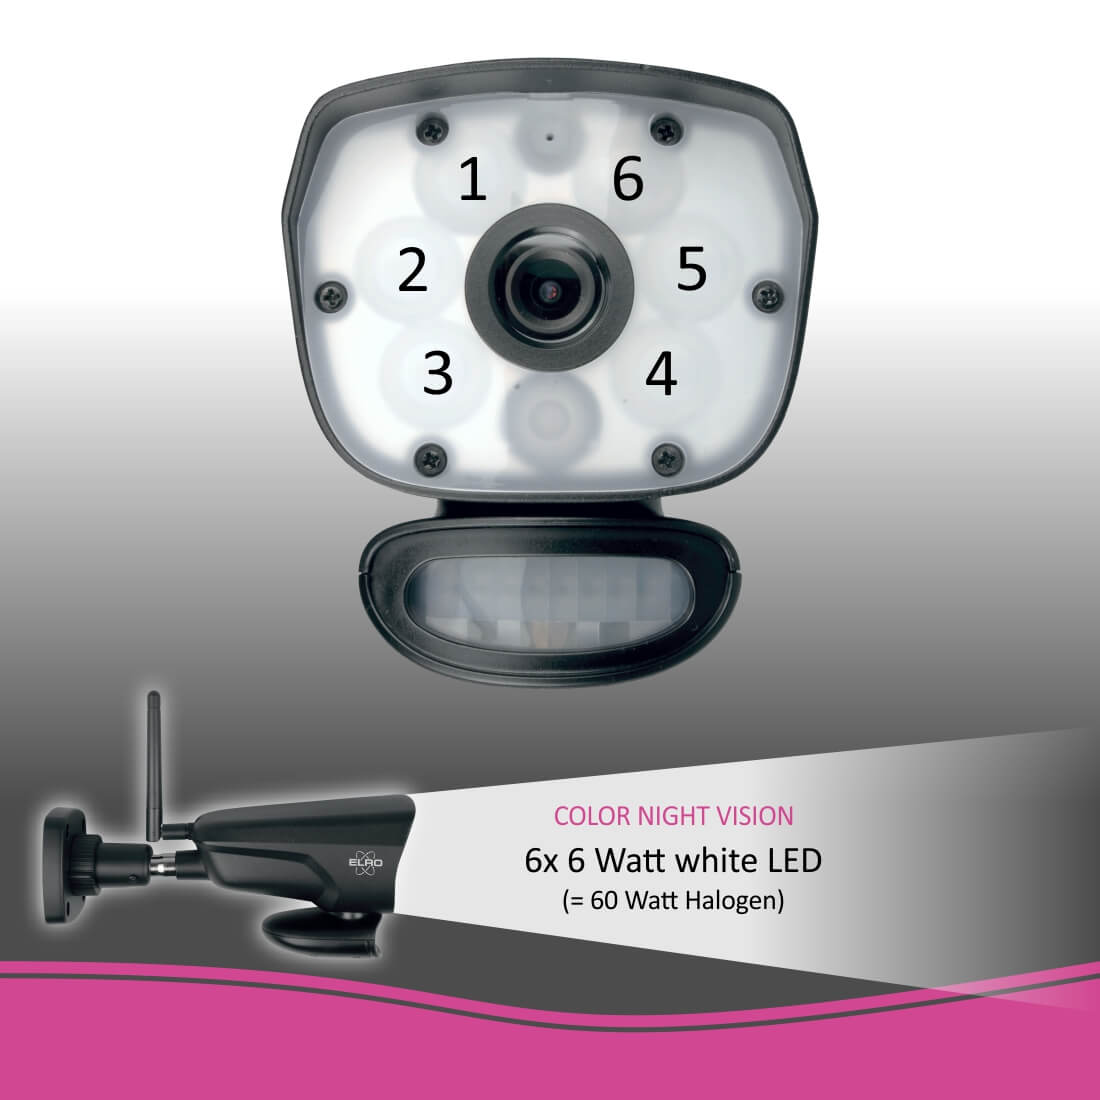 ELRO Colour Night Vision LED's